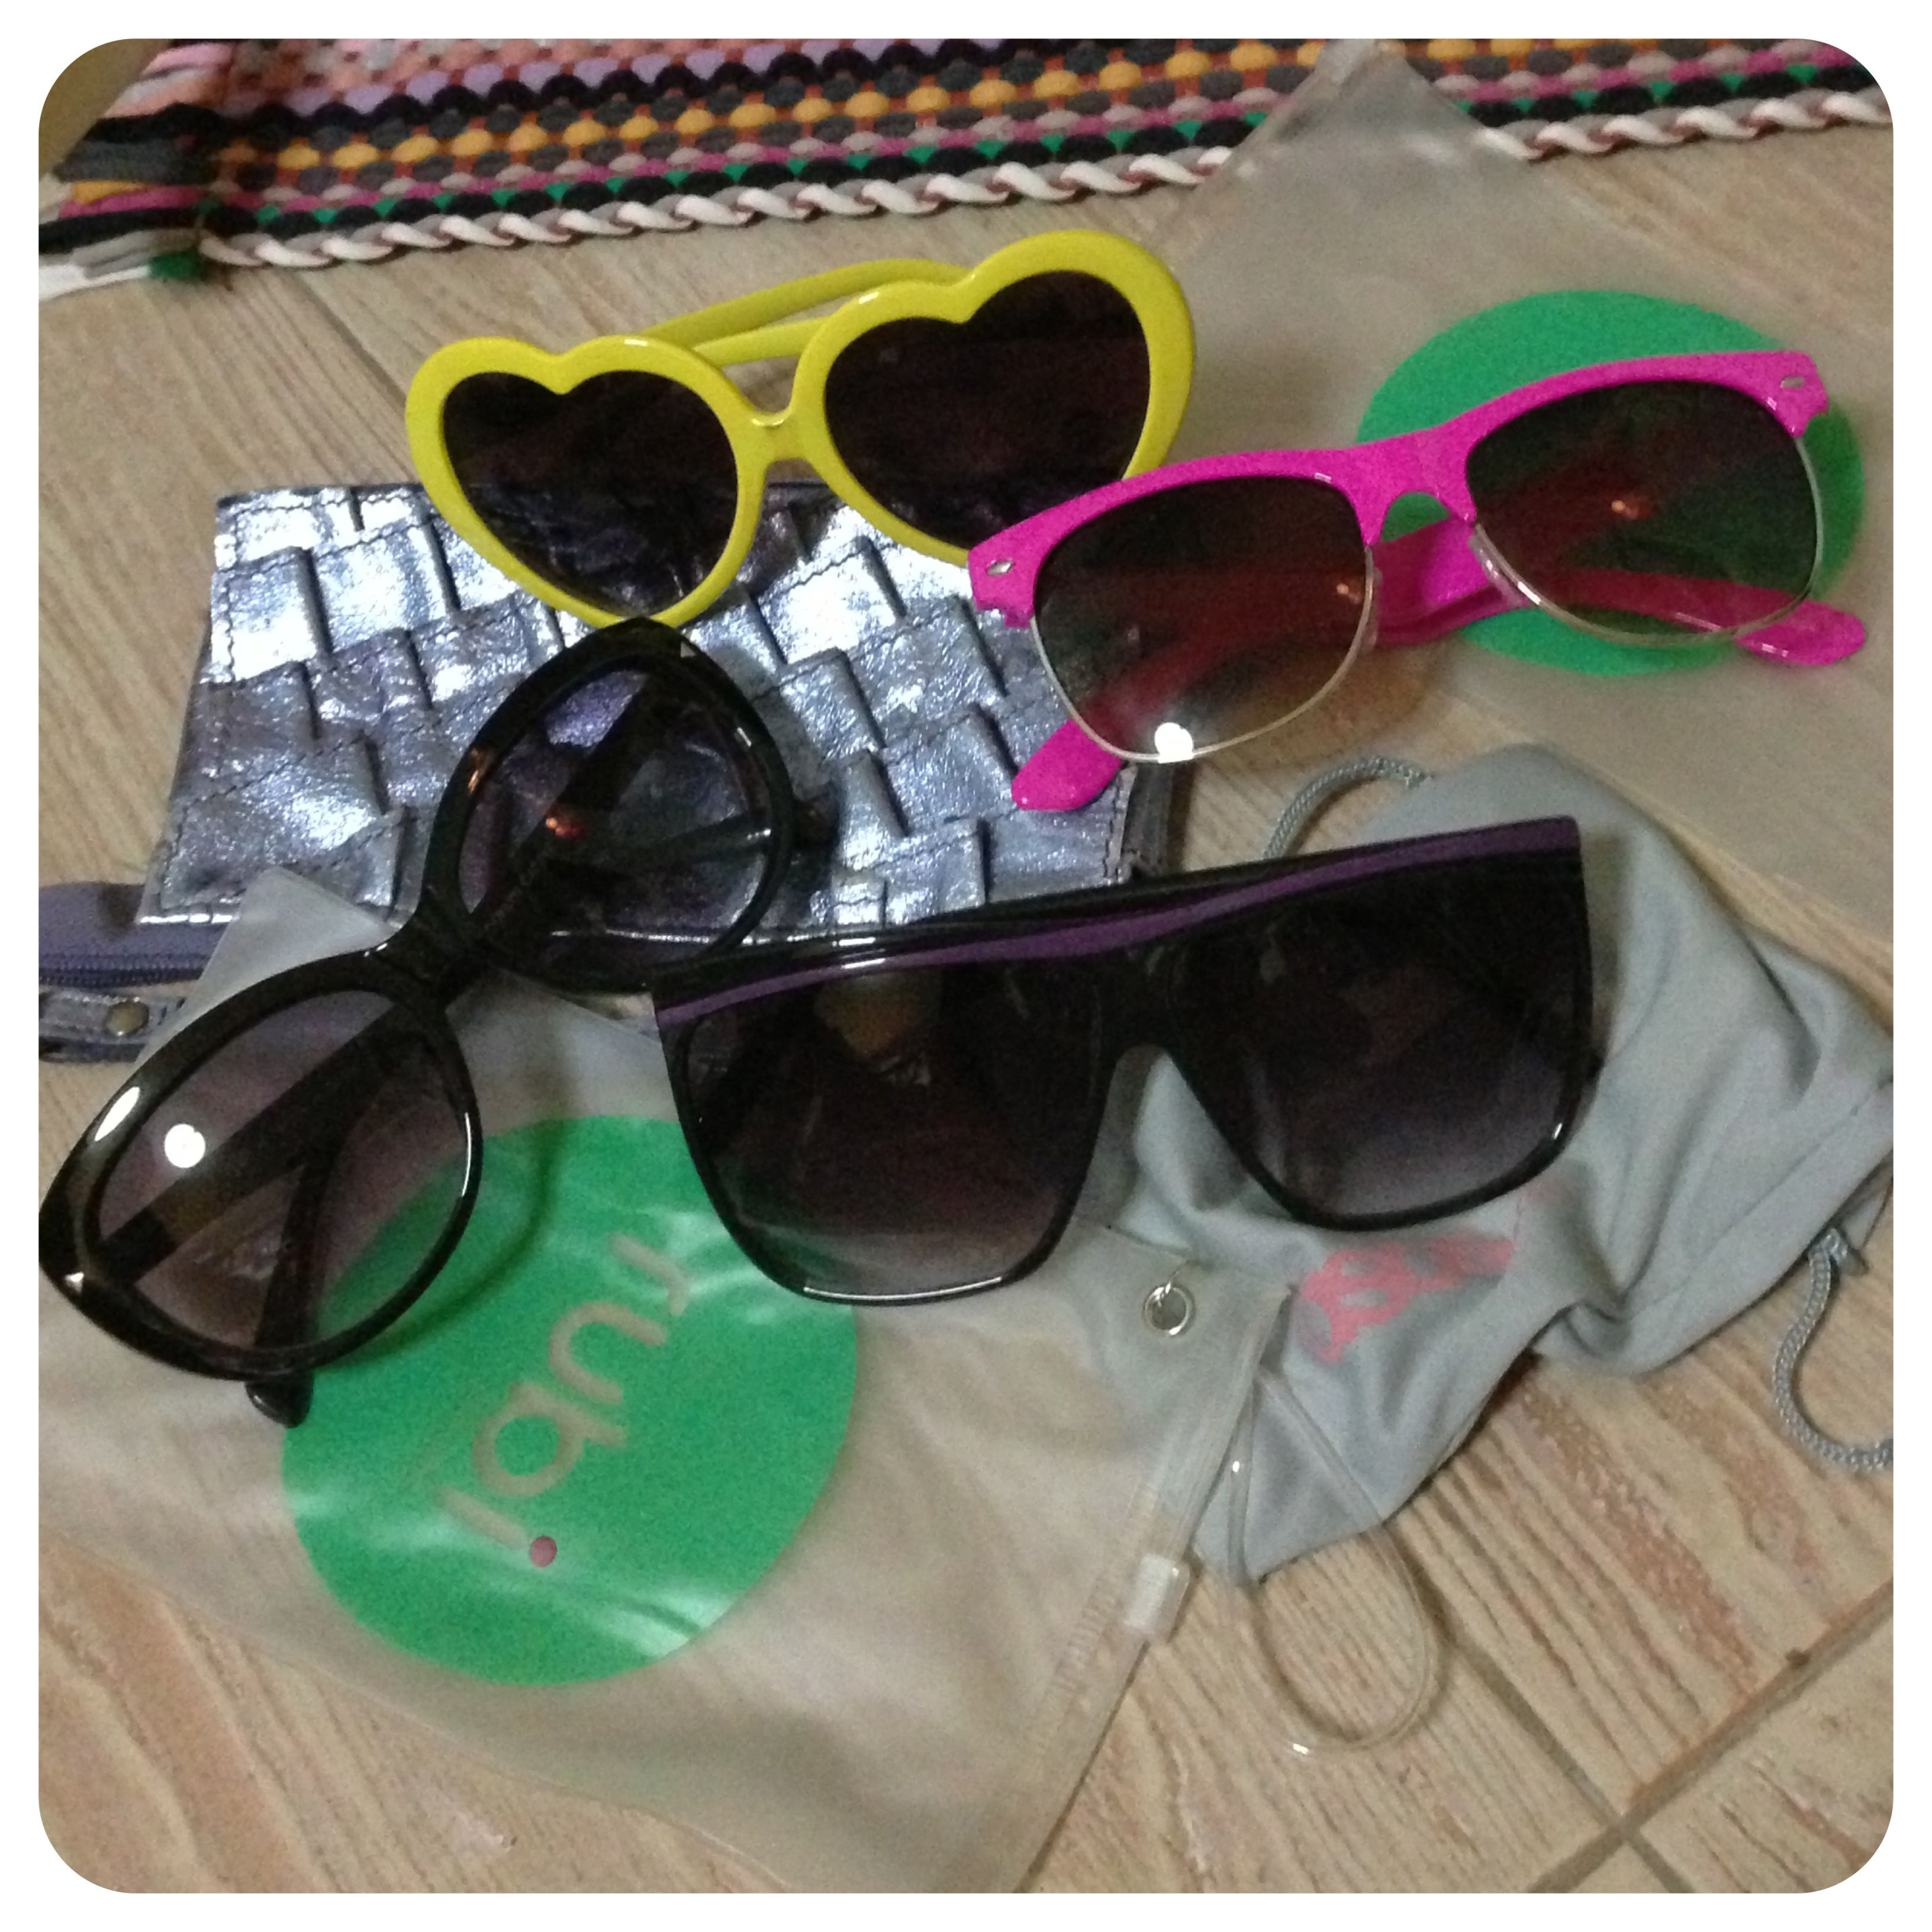 best quality buy best reputable site cheap vs expensive sunglasses | An Exercise In Trivial Pursuits